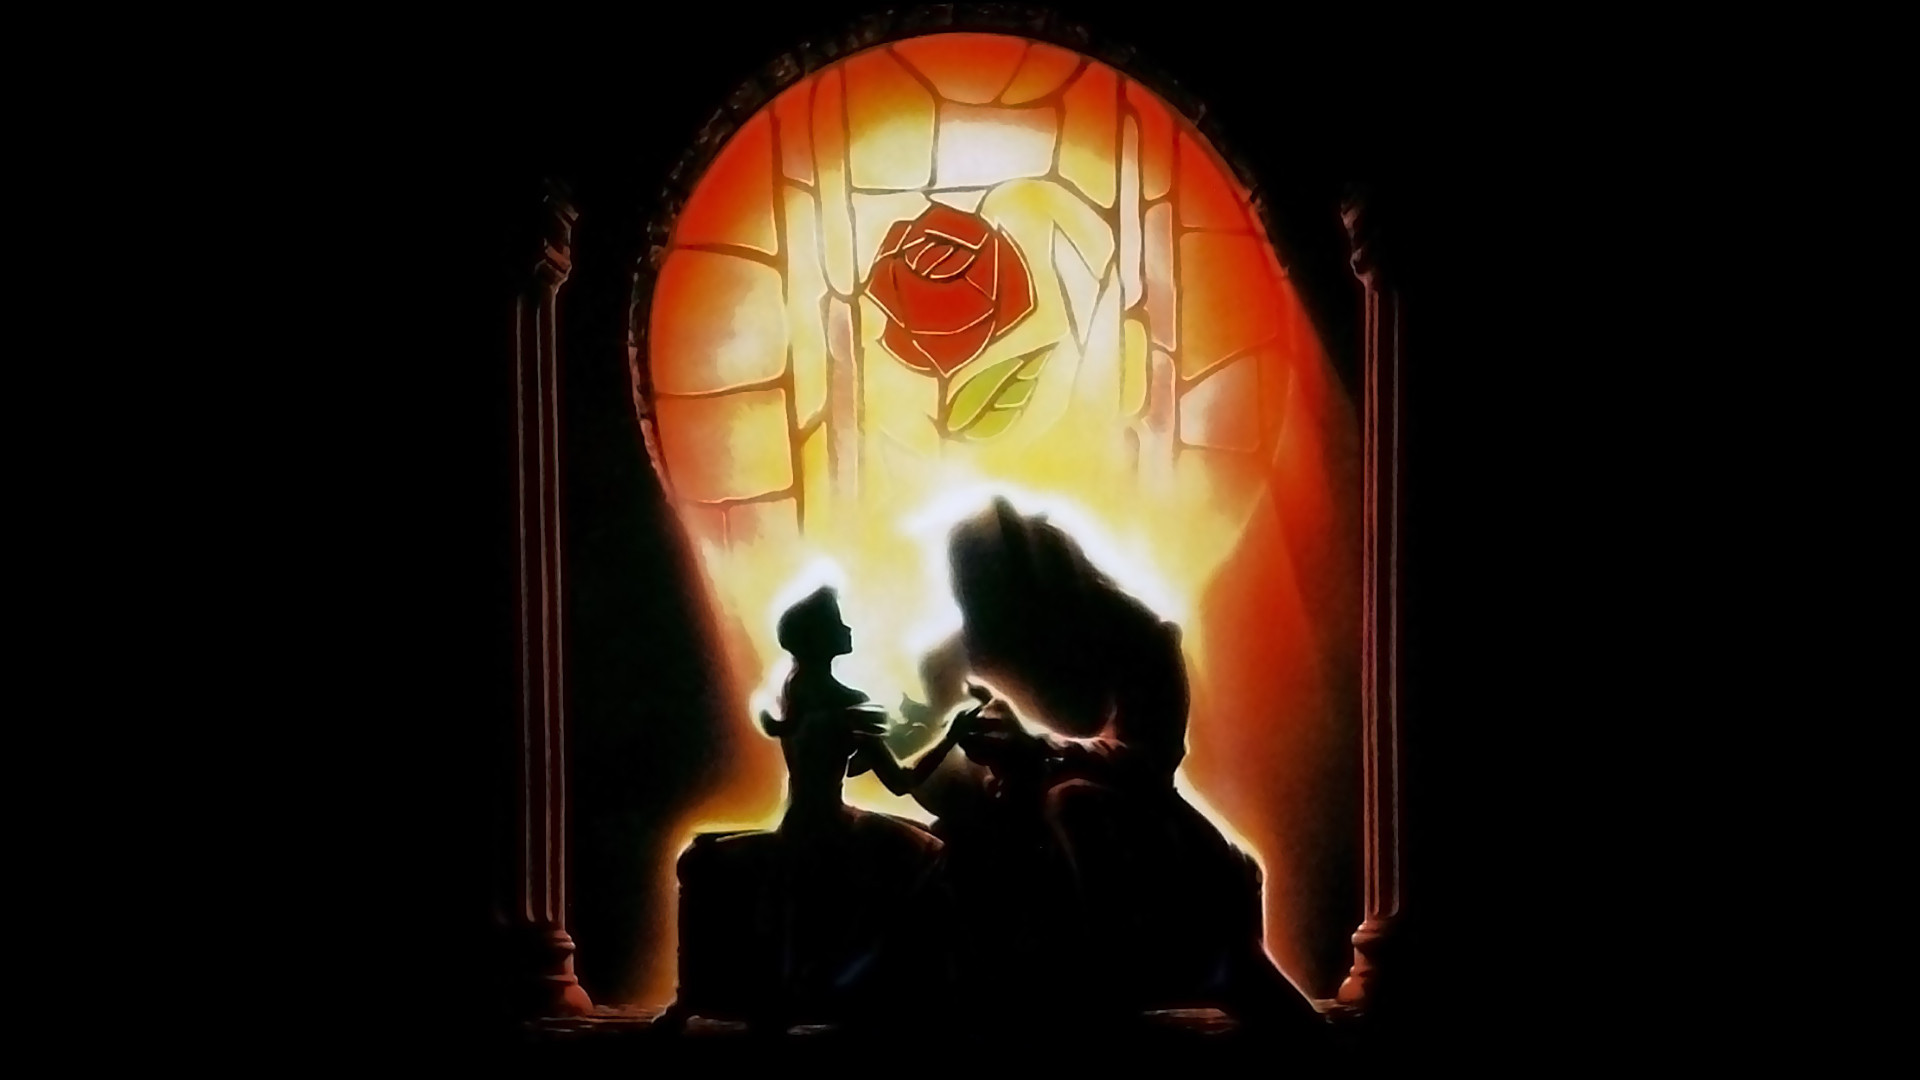 Beauty and the Beast Wallpaper   Original Poster   Beauty and the 1920x1080